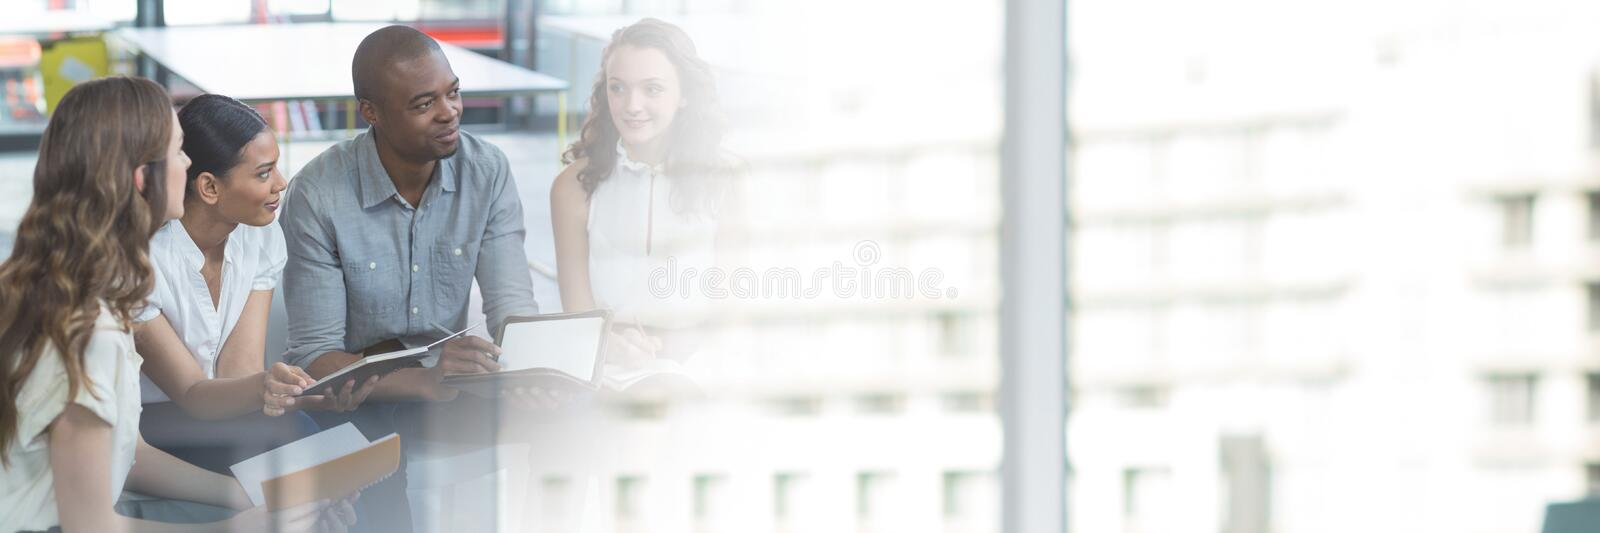 Business people having a meeting with building transition effect royalty free stock image